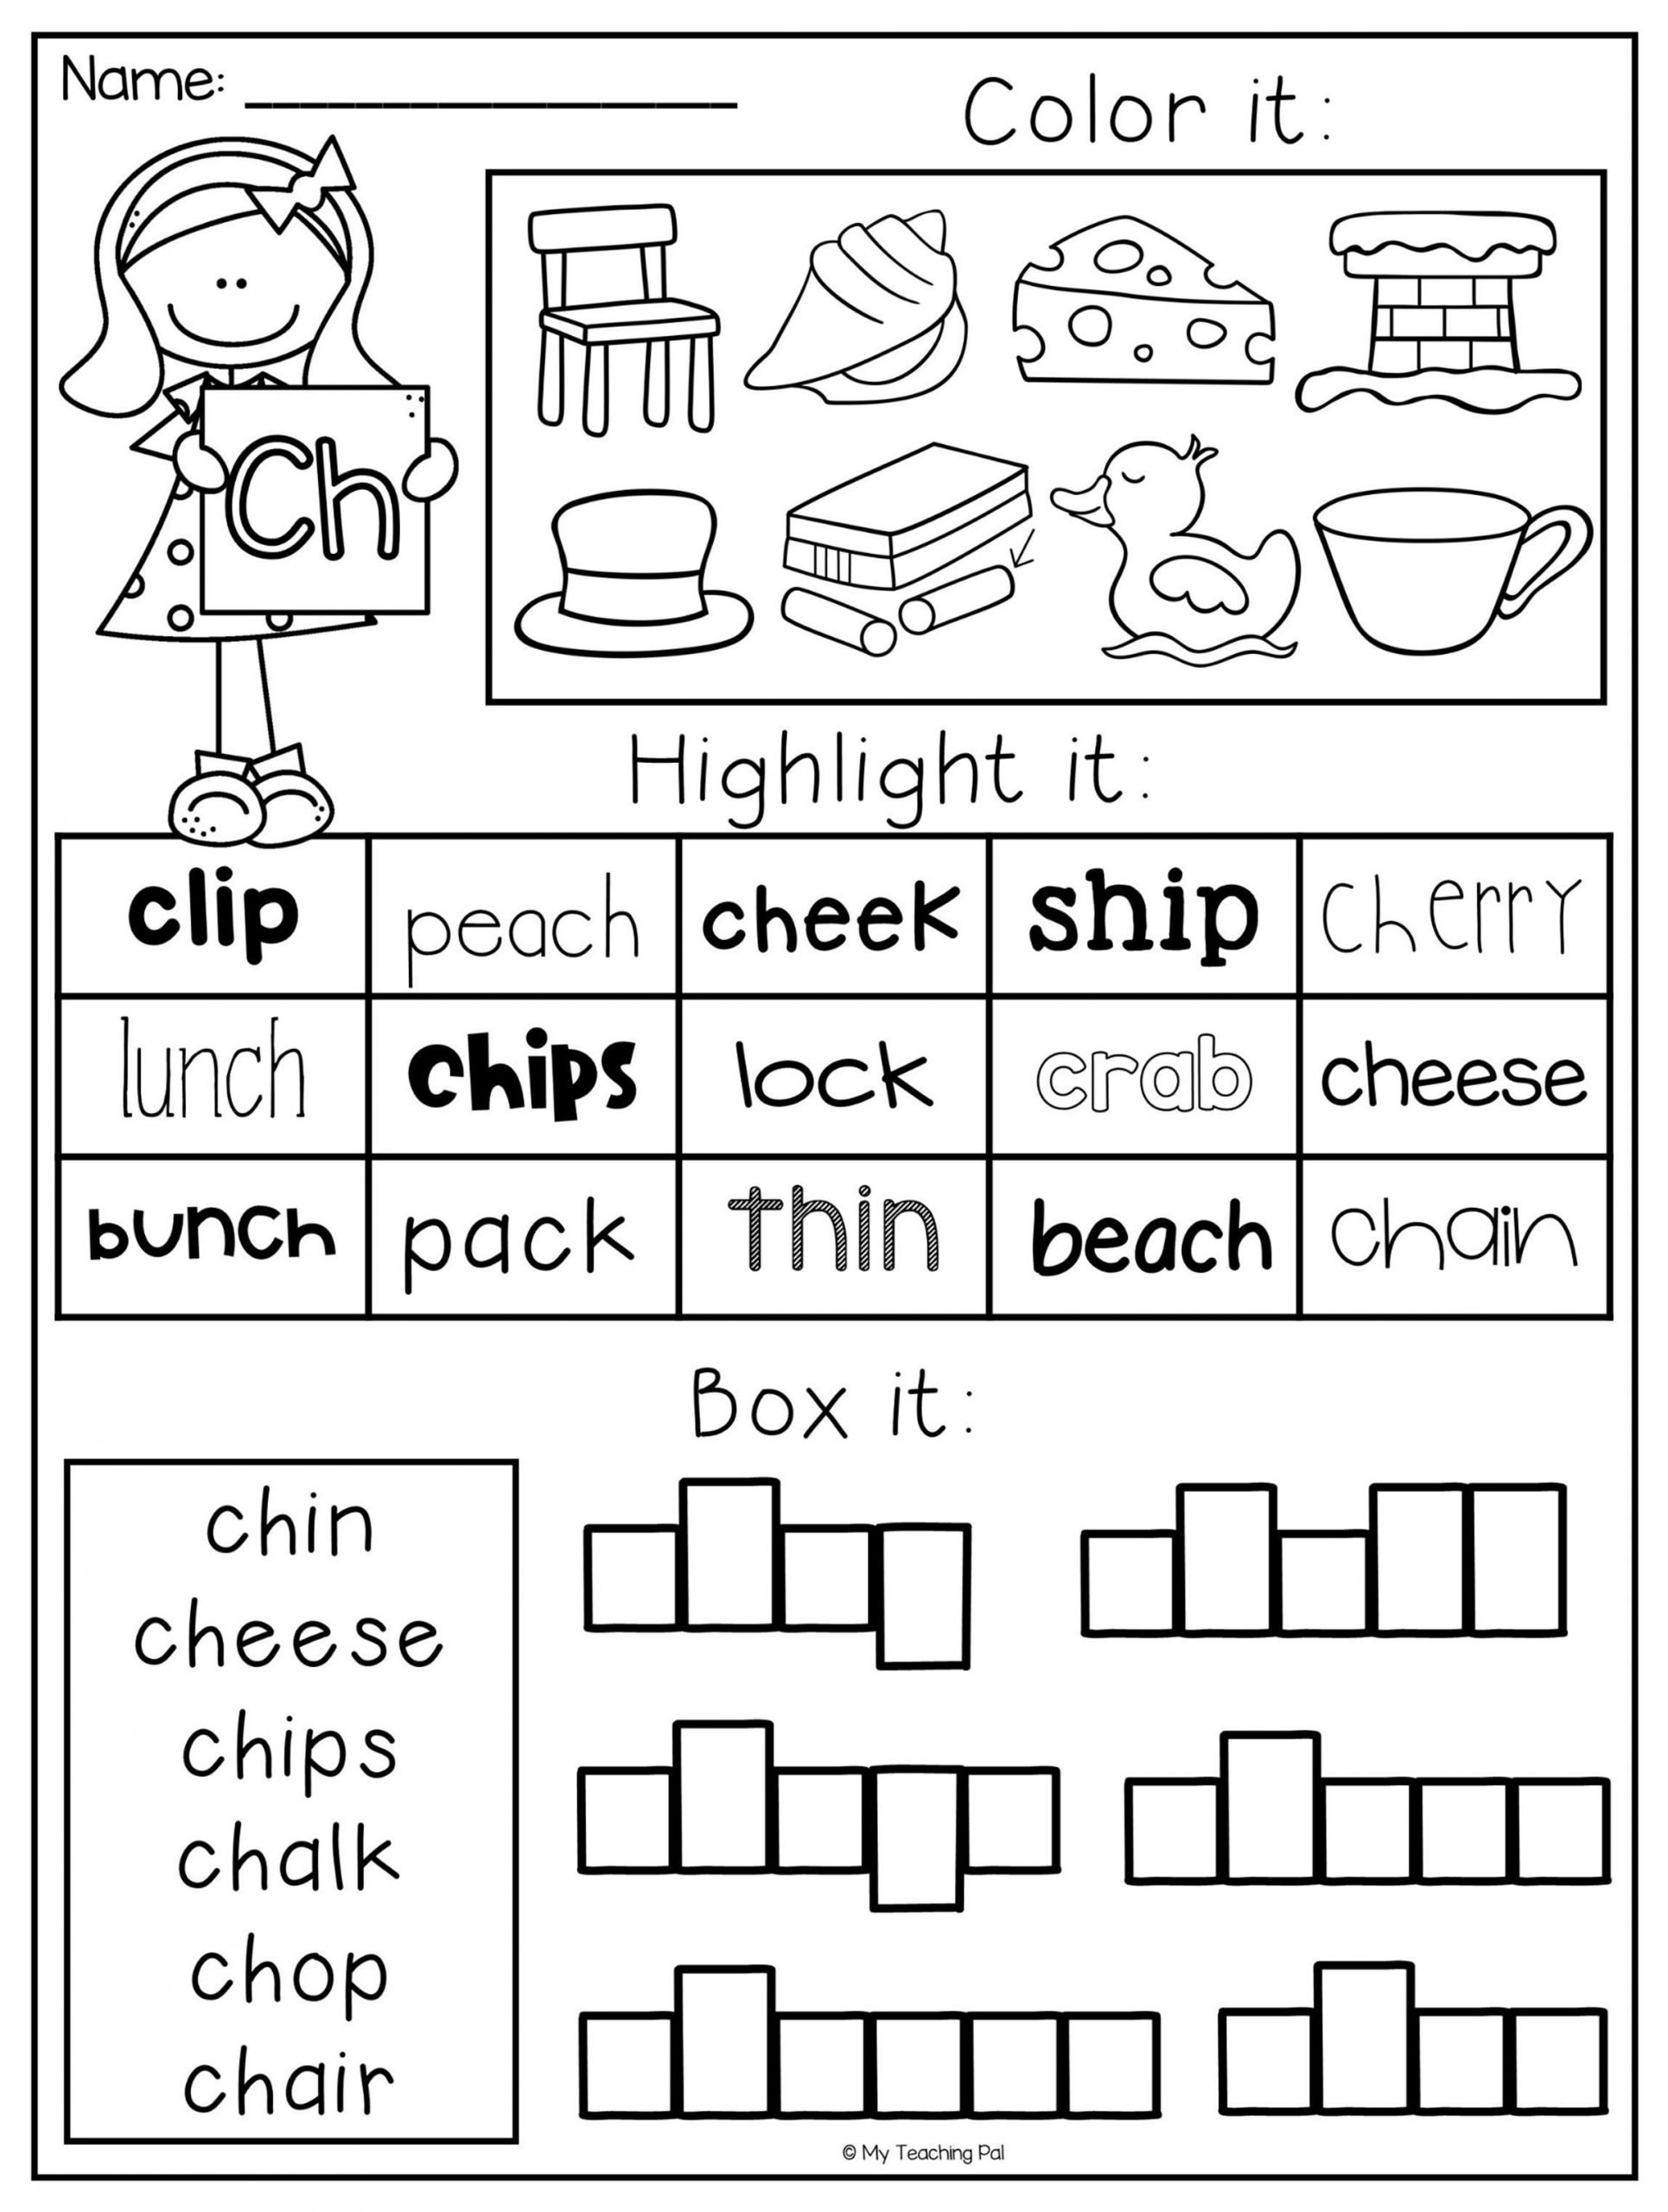 Th sound Worksheets Kindergarten Digraph Worksheet Packet Ch Sh Th Wh Ph